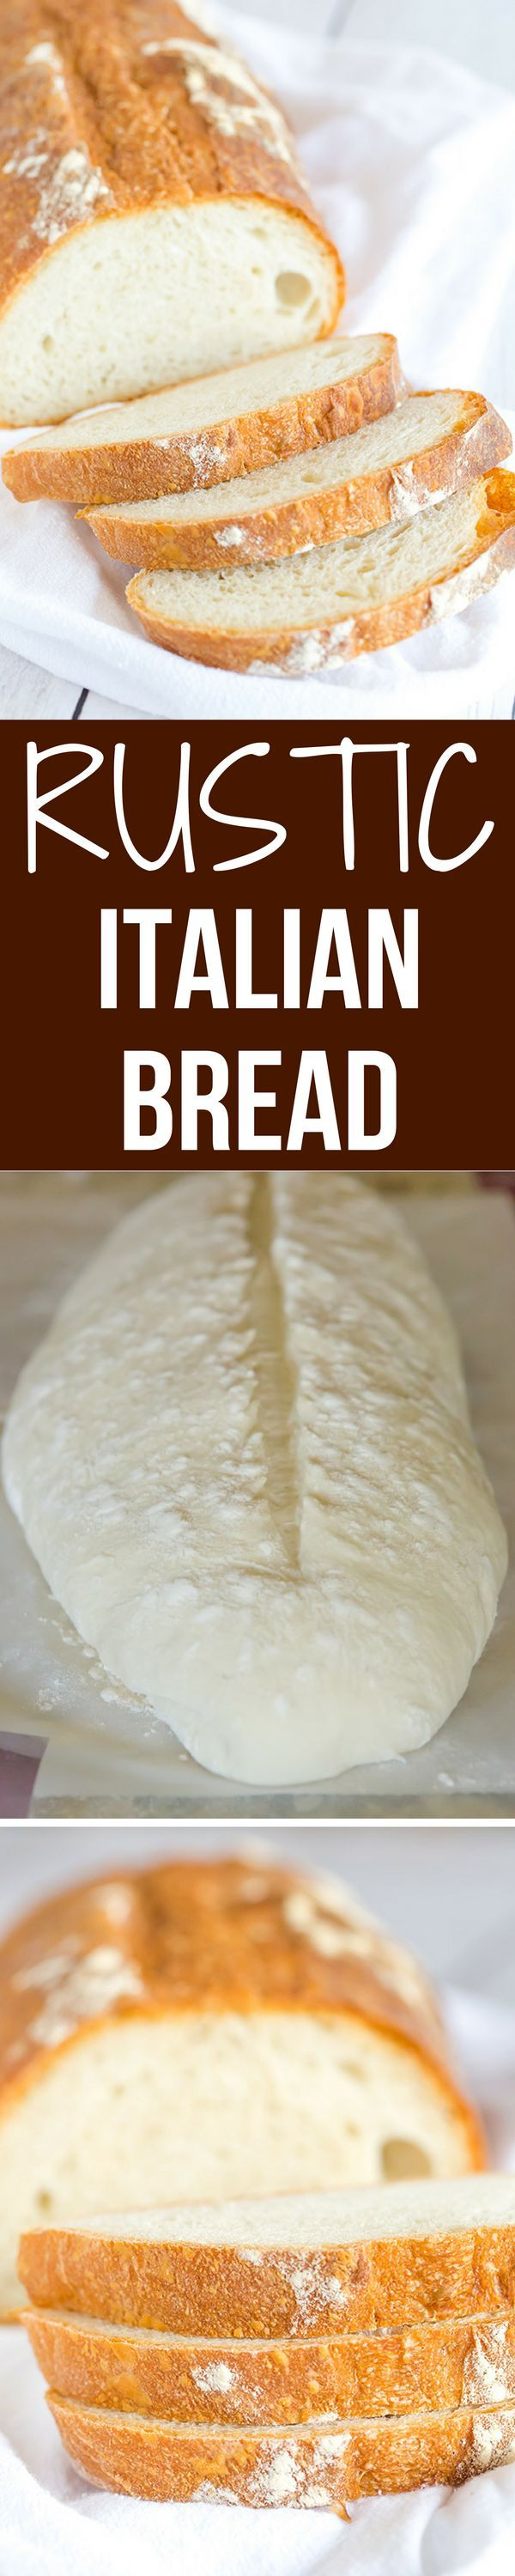 This Italian bread recipe takes some time to come together, but the hard crust…